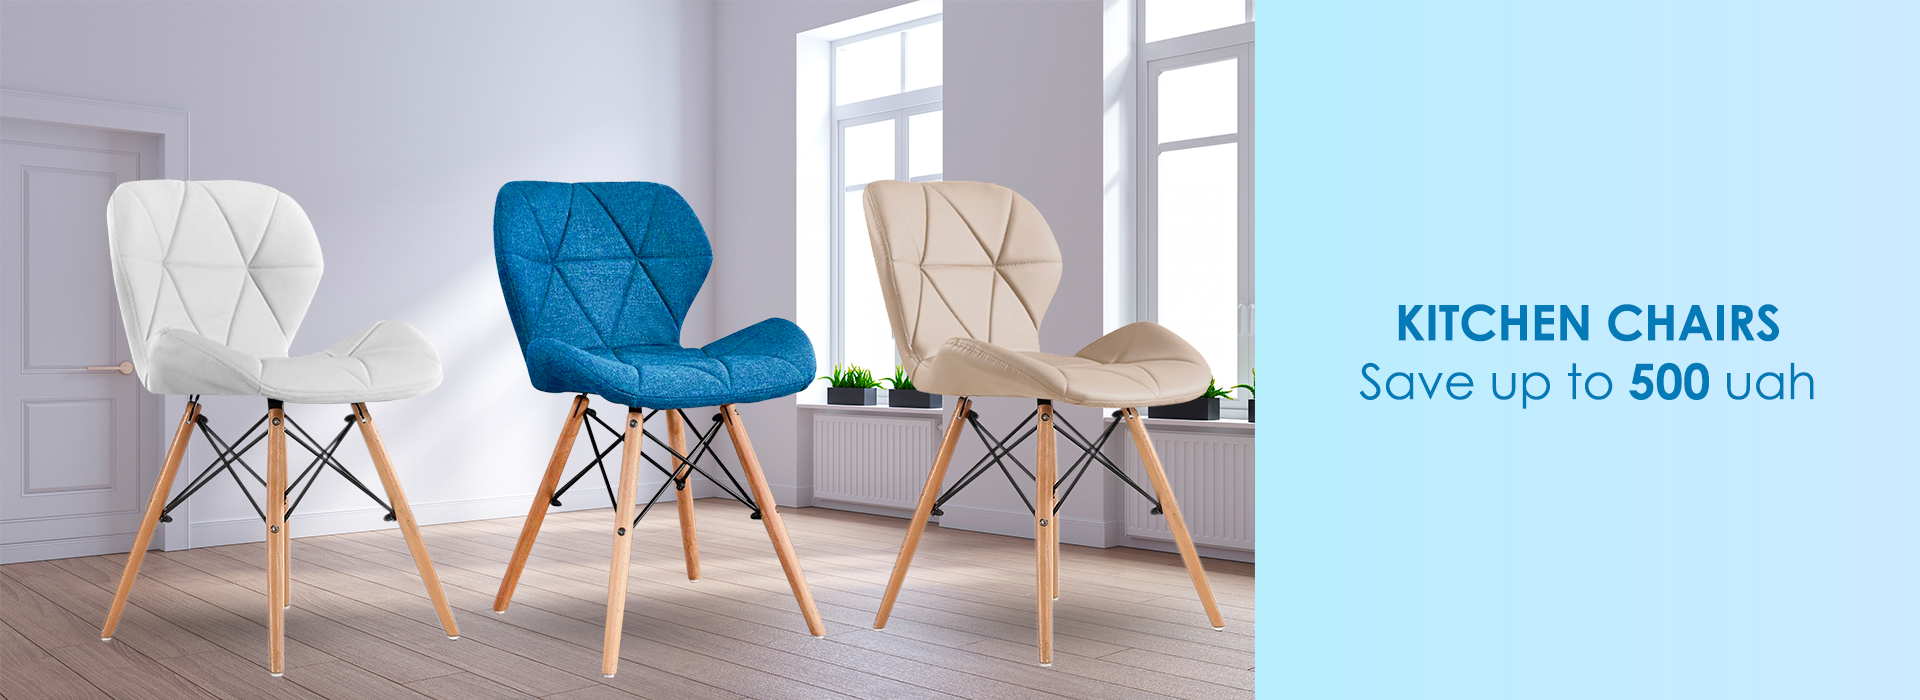 Stock! Pre-order for new Gt Racer kitchen chairs!